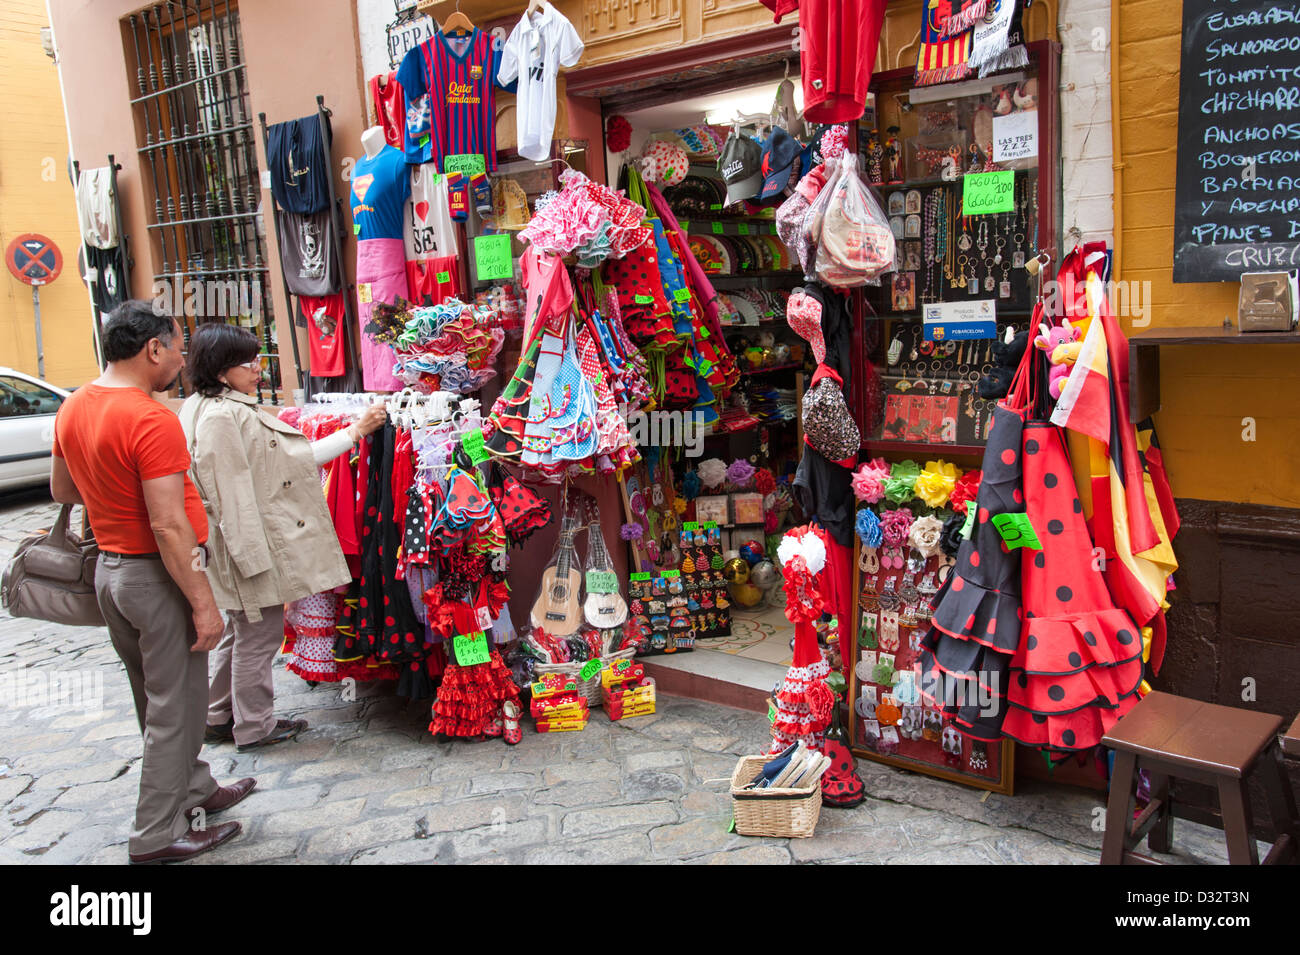 Sevilla Winkelen Tourist Shopping At Souvenir Shop Seville Spain Stock